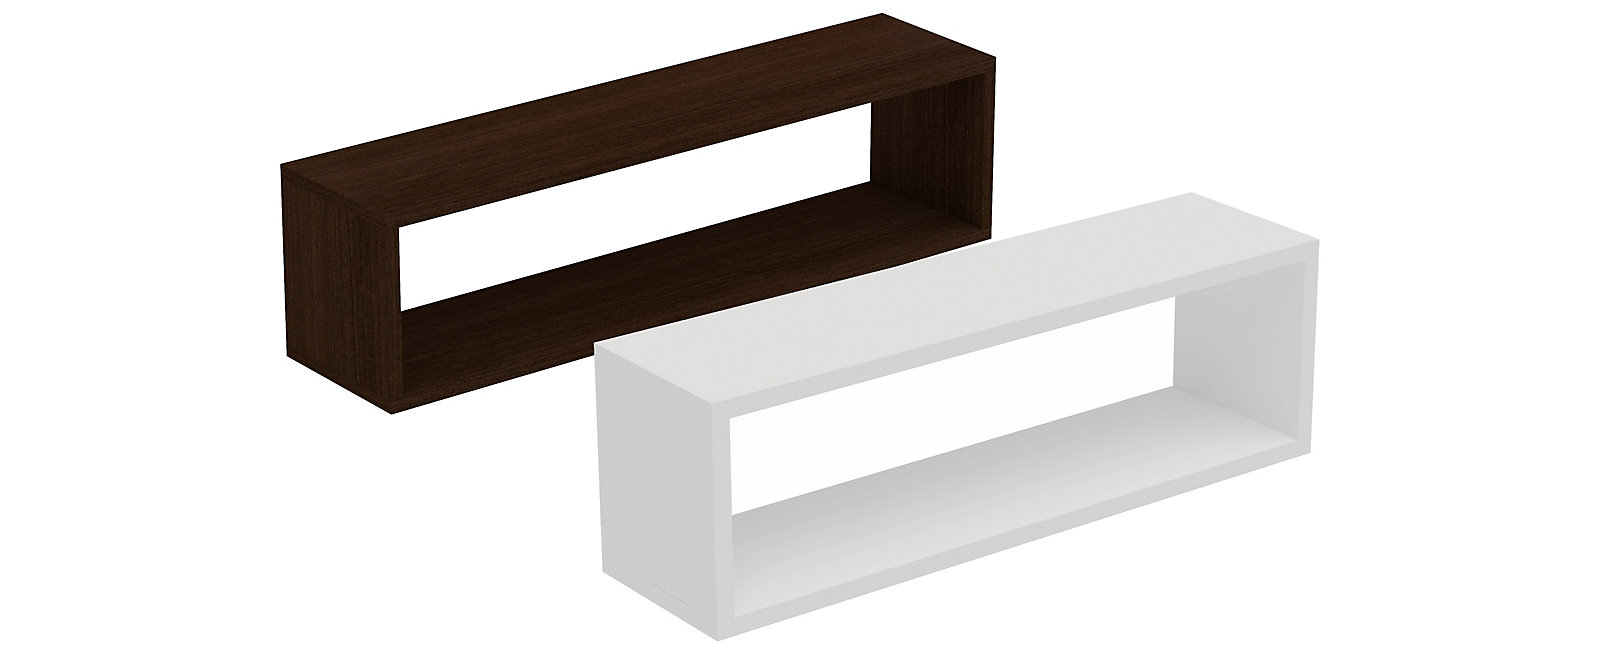 Tichla Shelf Collection, , large